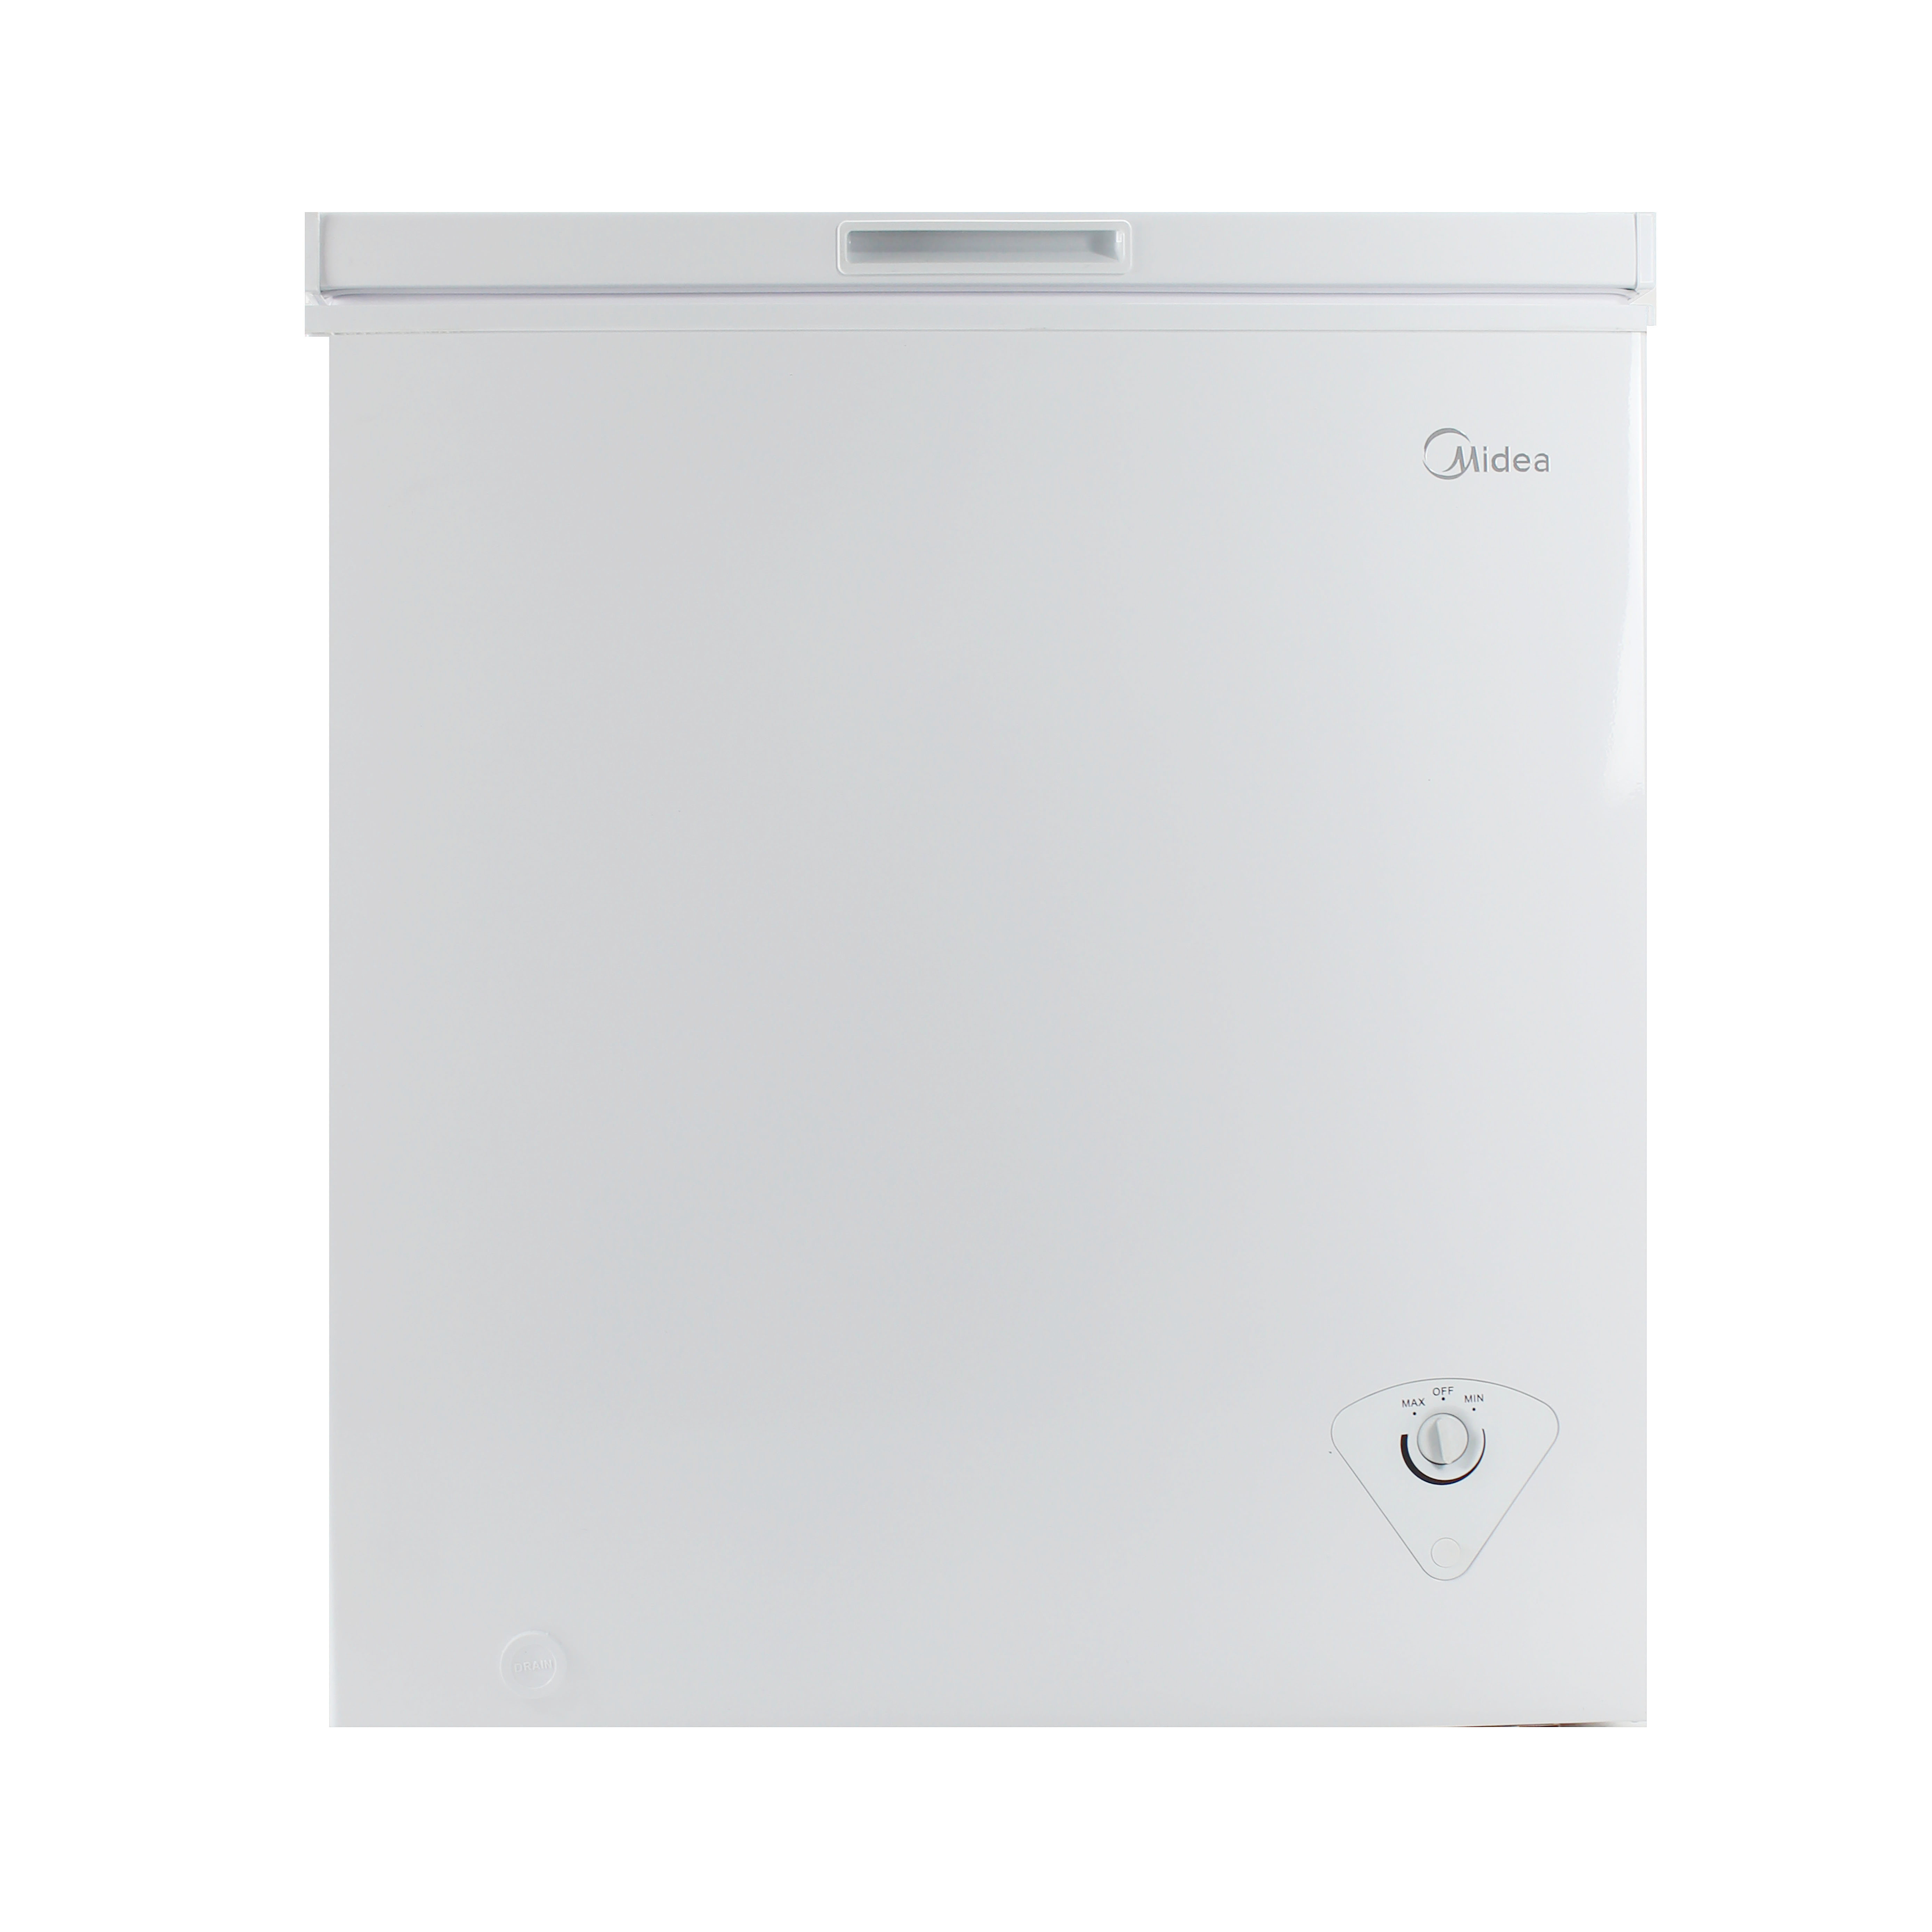 Equator-Midea CF 185-50 - Chest Freezer White - Capacity 5 cu.ft